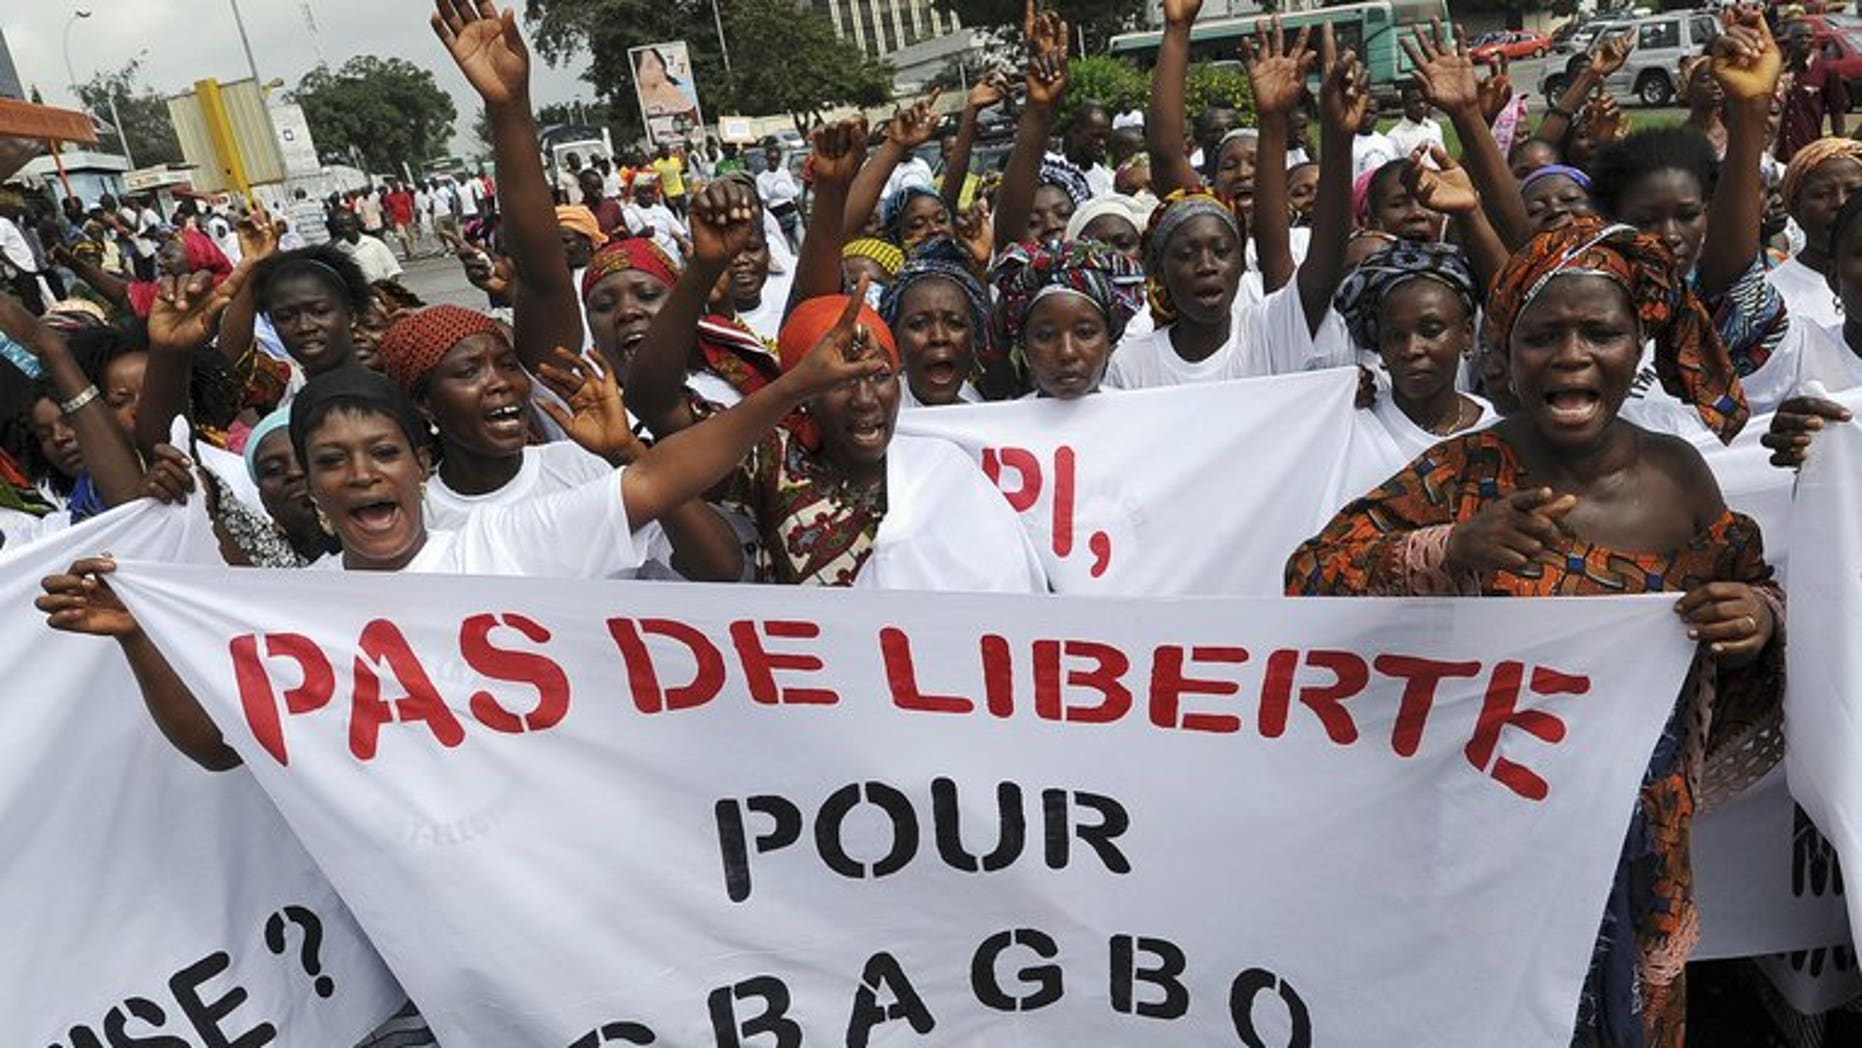 """Women hold a banner reading """"No Freedom for Gbagbo"""" during a demonstration for victims of the 2011 crisis in Ivory Coast, on June 17, 2013 in Abidjan. An Abidjan court on Monday released on bail 14 aides of former president Laurent Gbagbo, including his son Michel, who had been detained in the aftermath of Ivory Coast's deadly 2011 crisis."""